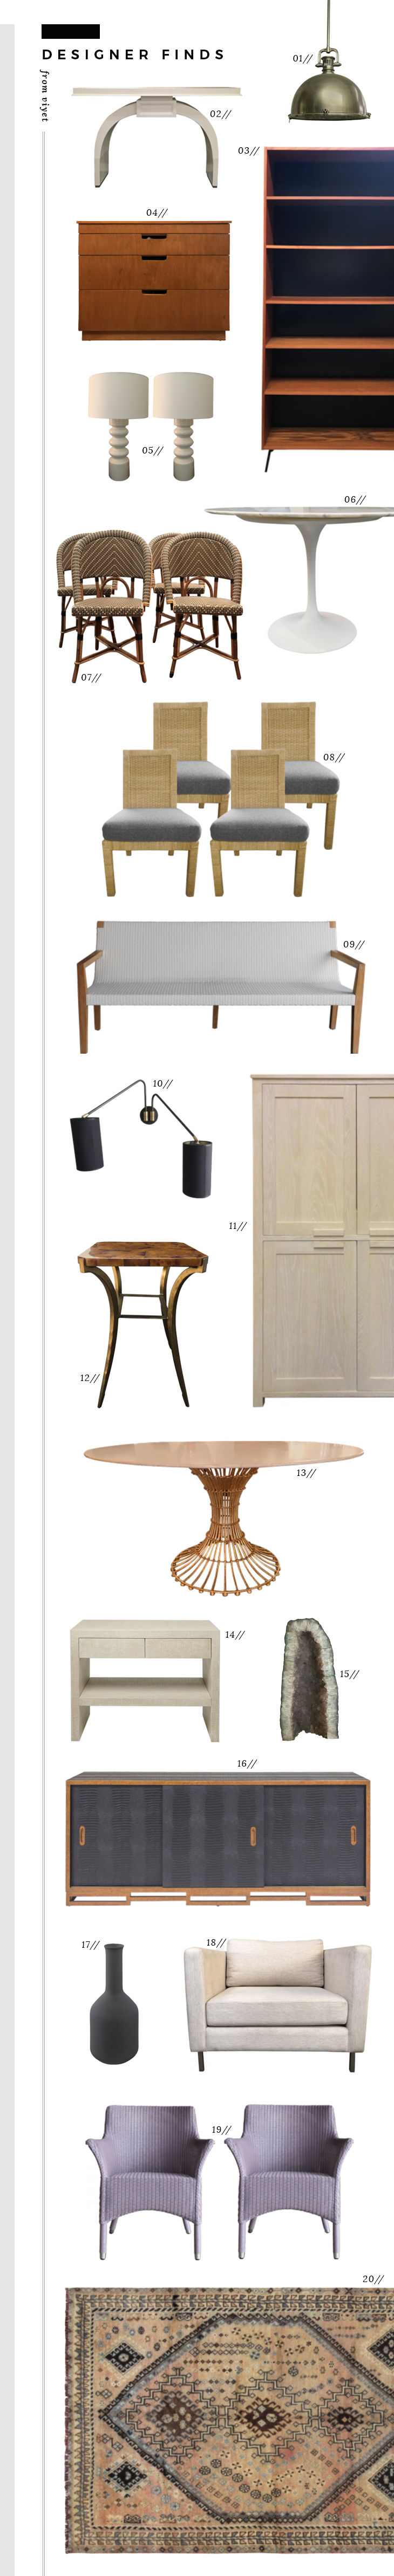 Vintage and Designer Furniture